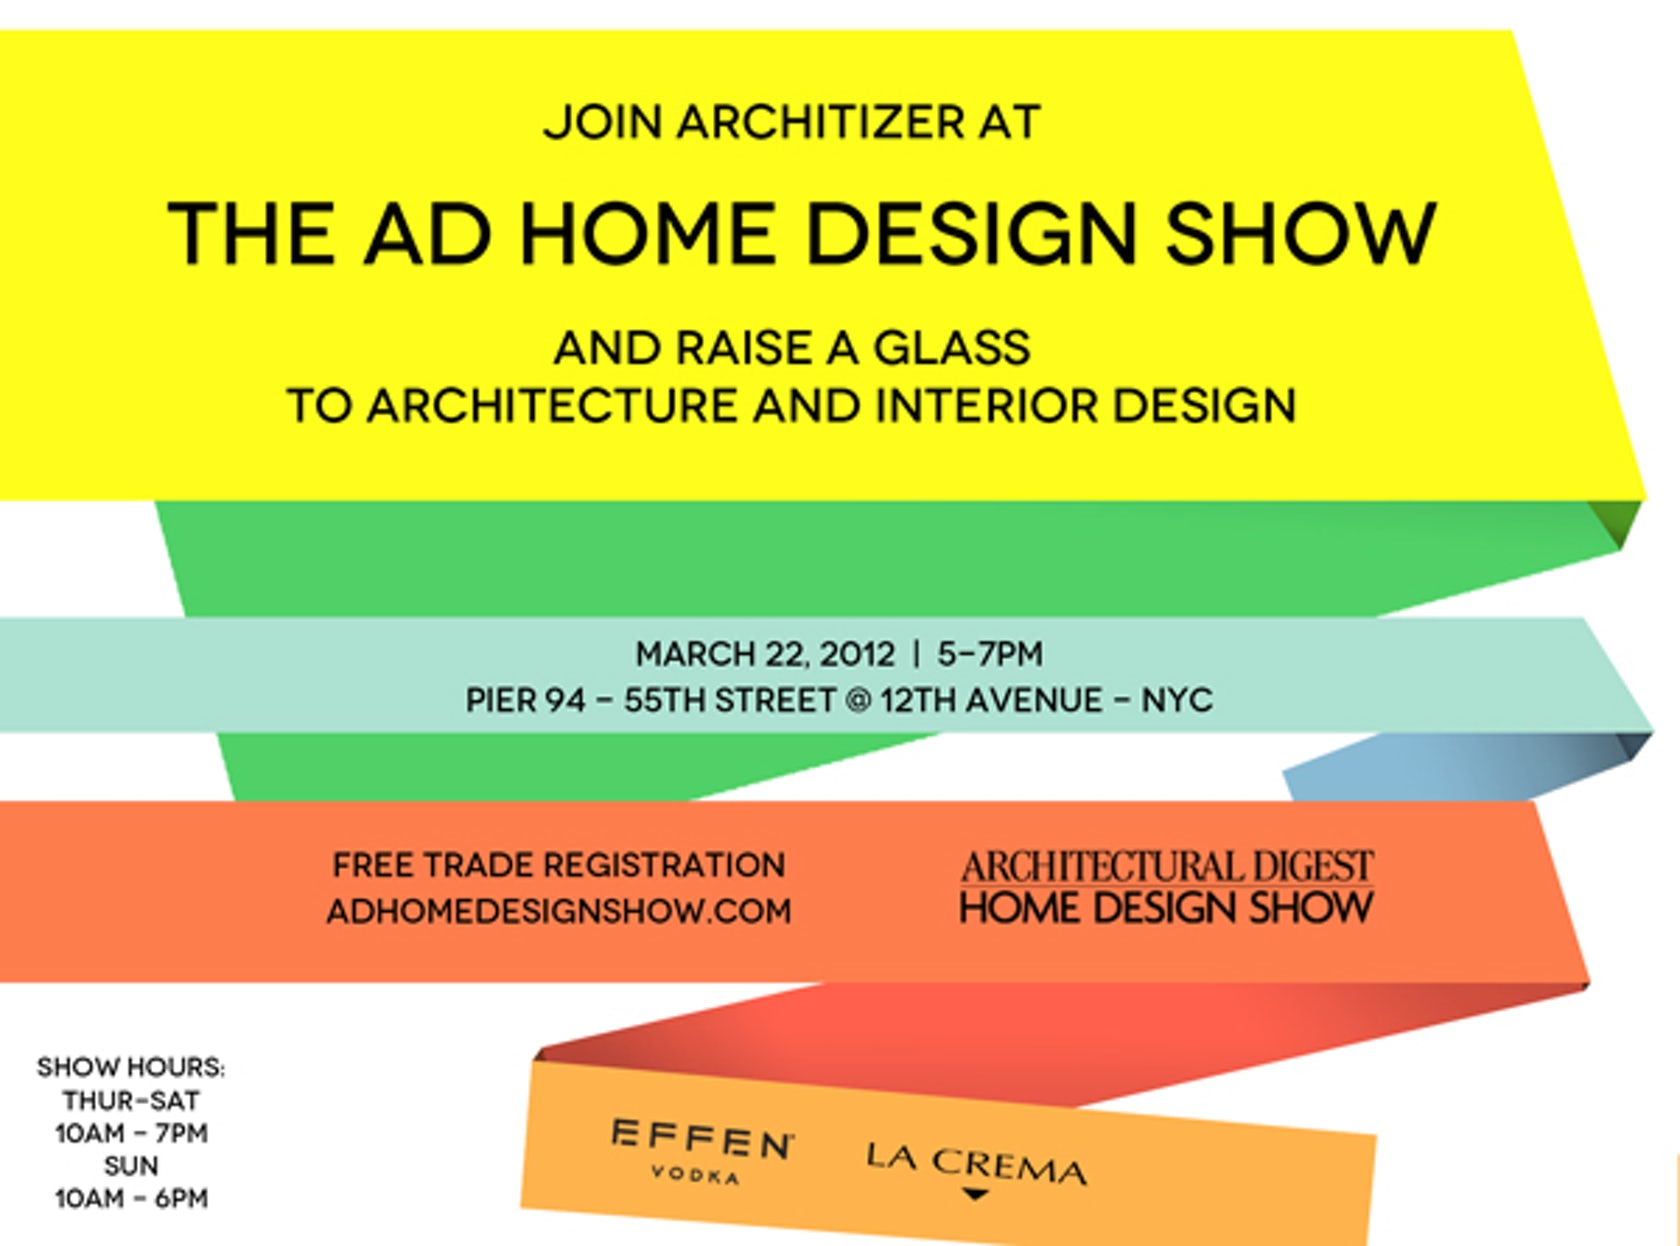 architectural digest home design show nyc 2015 100 home design shows nyc new york u0027s - Home Design Show Nyc